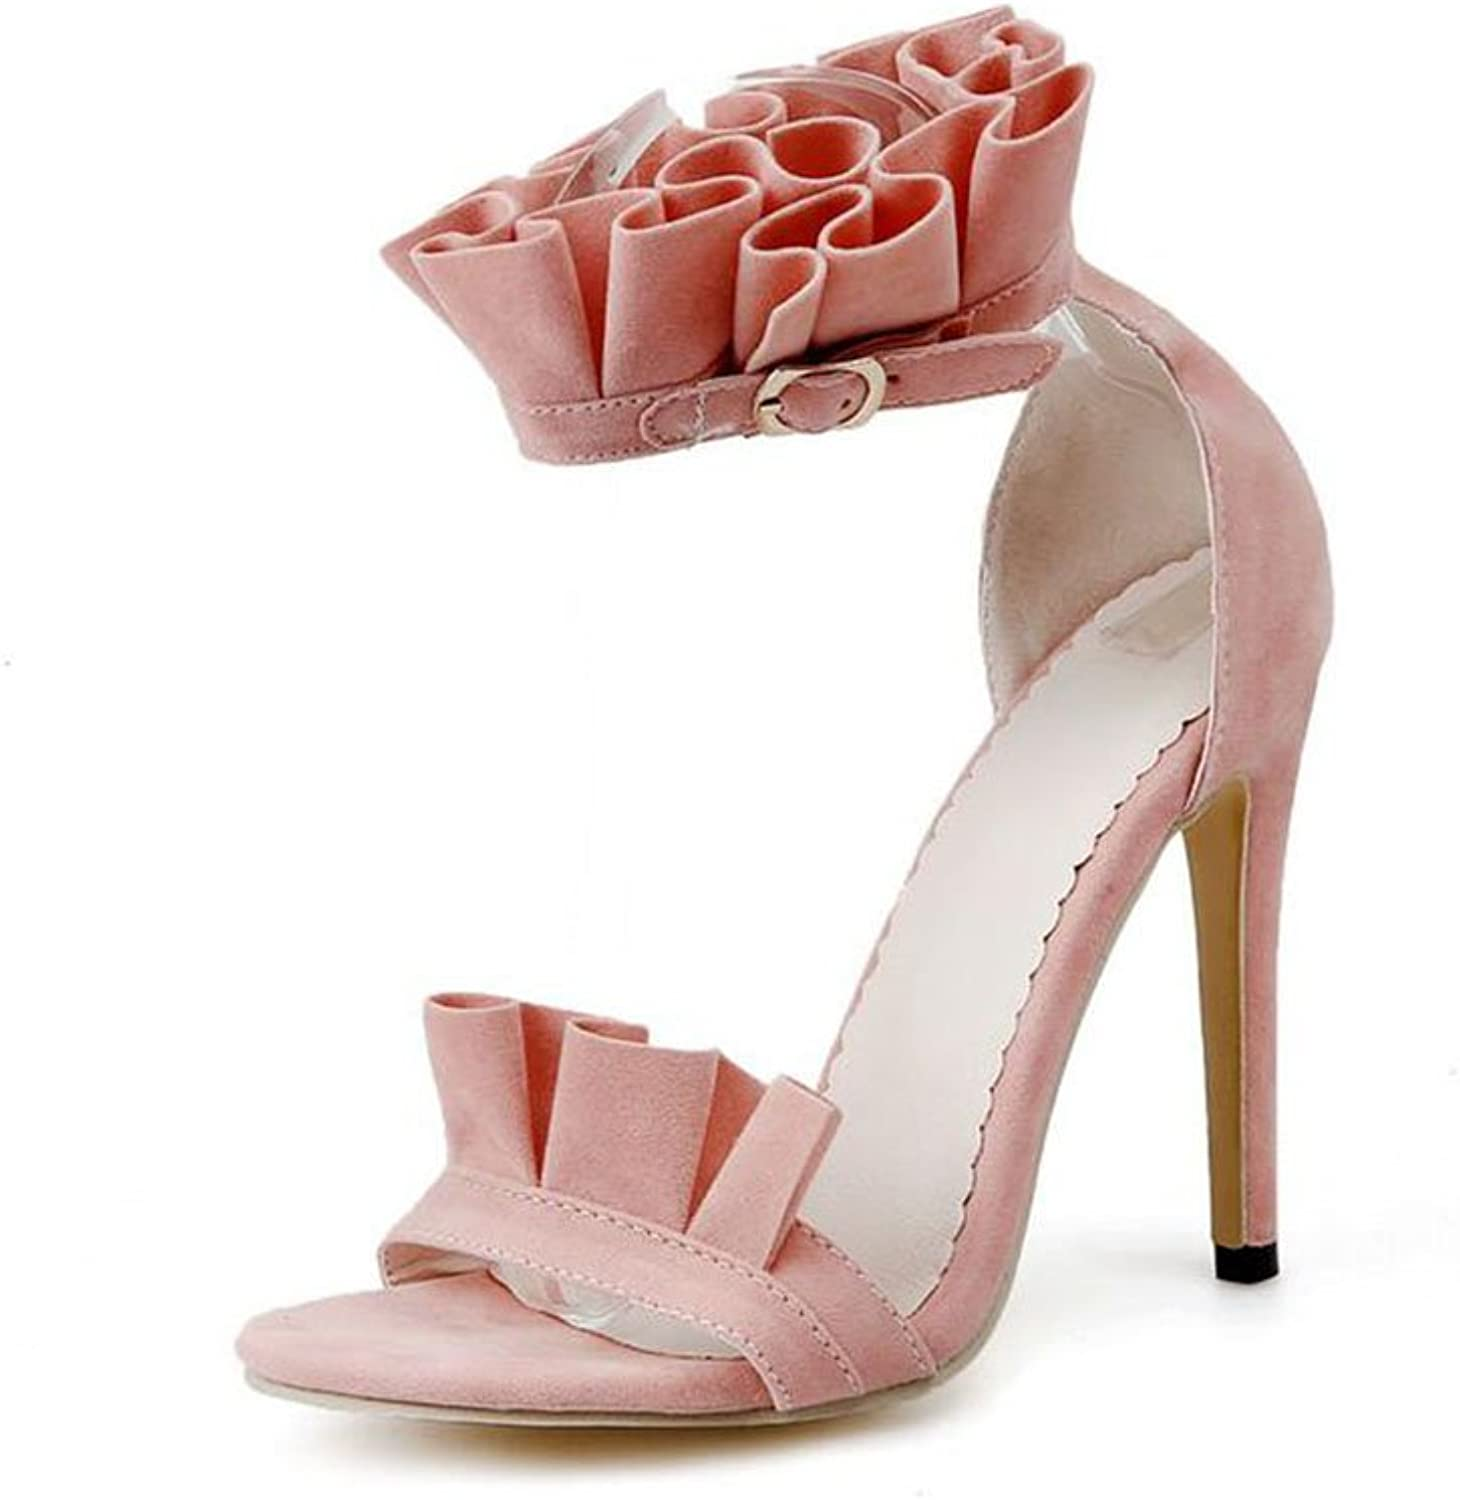 Women's shoes Suede Summer Comfort Sandals Ruffled High-Heeled Sandals for Casual Yellow Black orange Pink Sandals